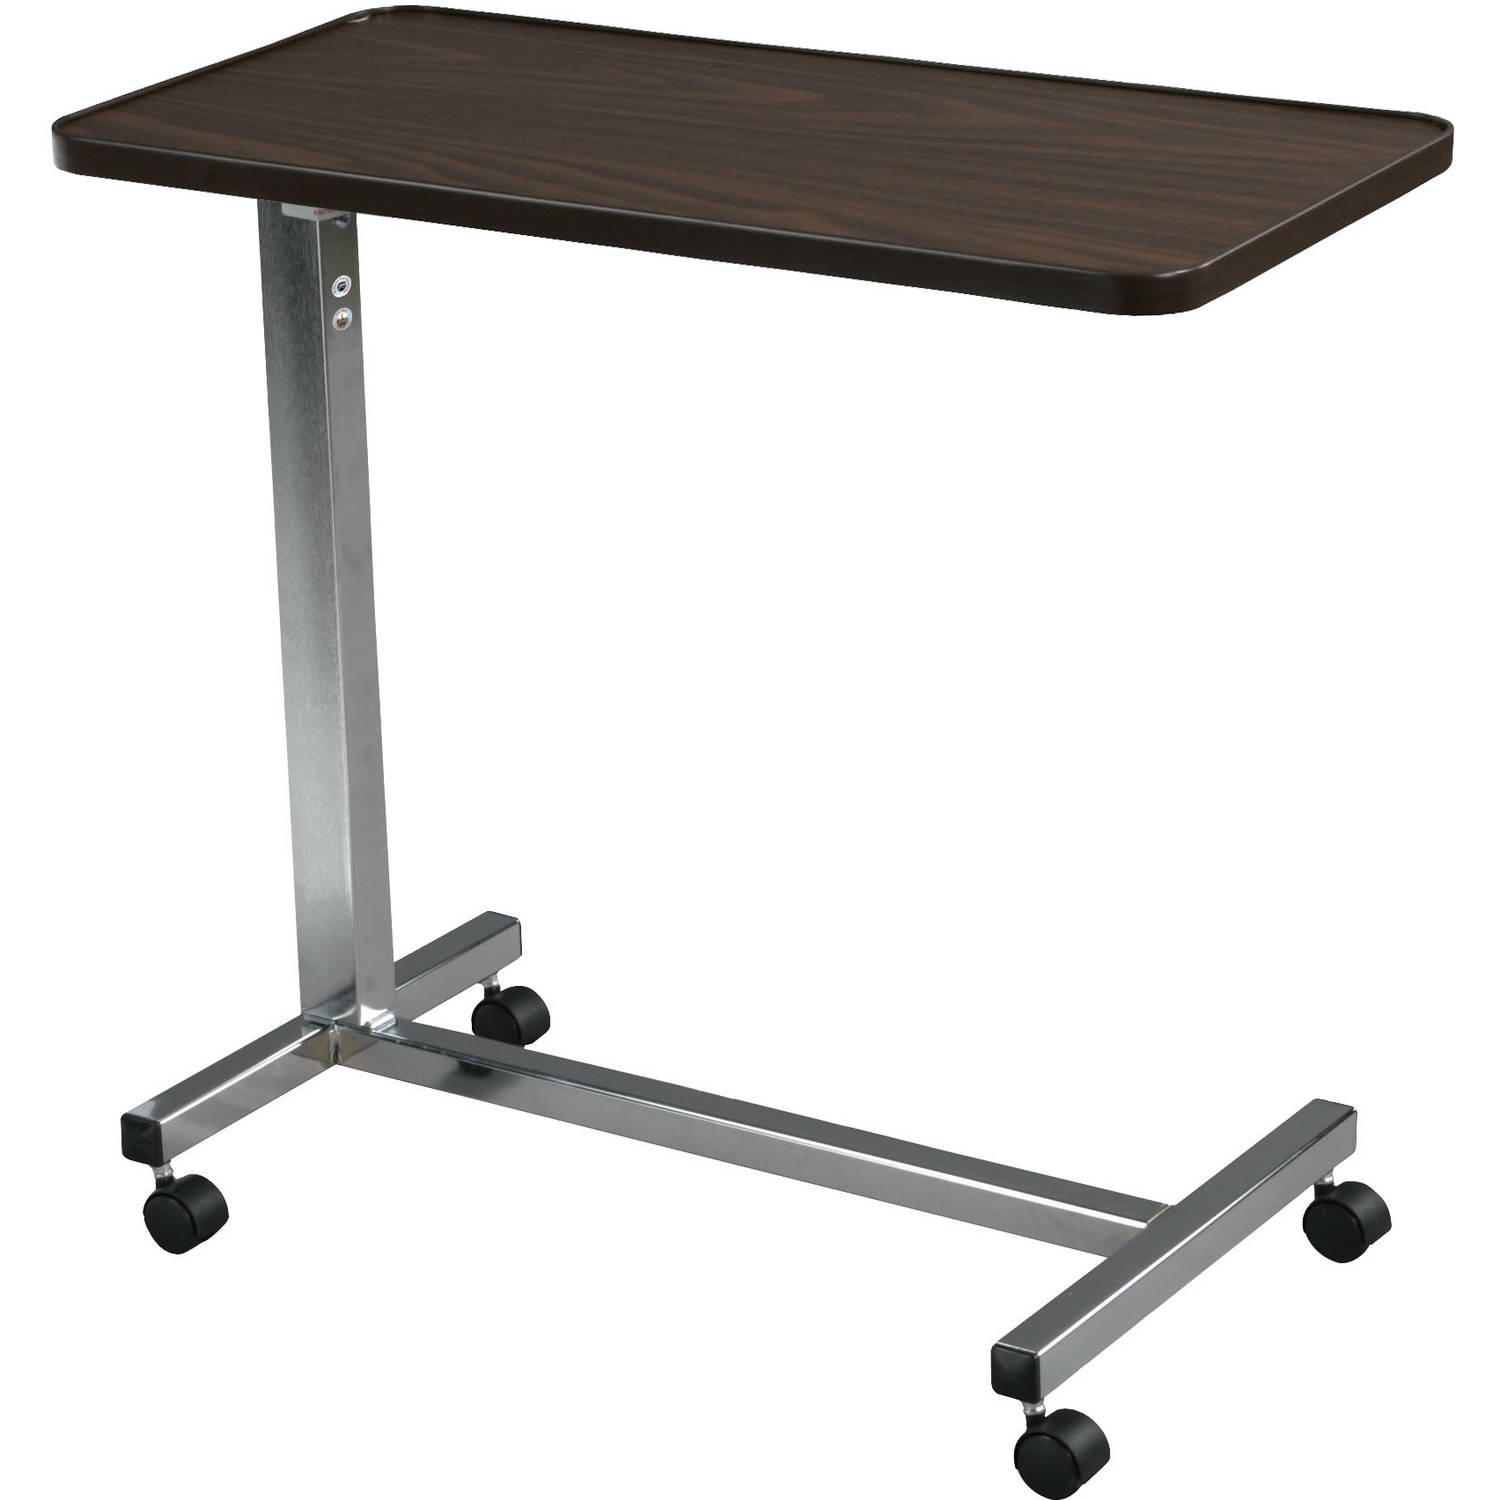 Overbed table with storage - Overbed Table With Storage